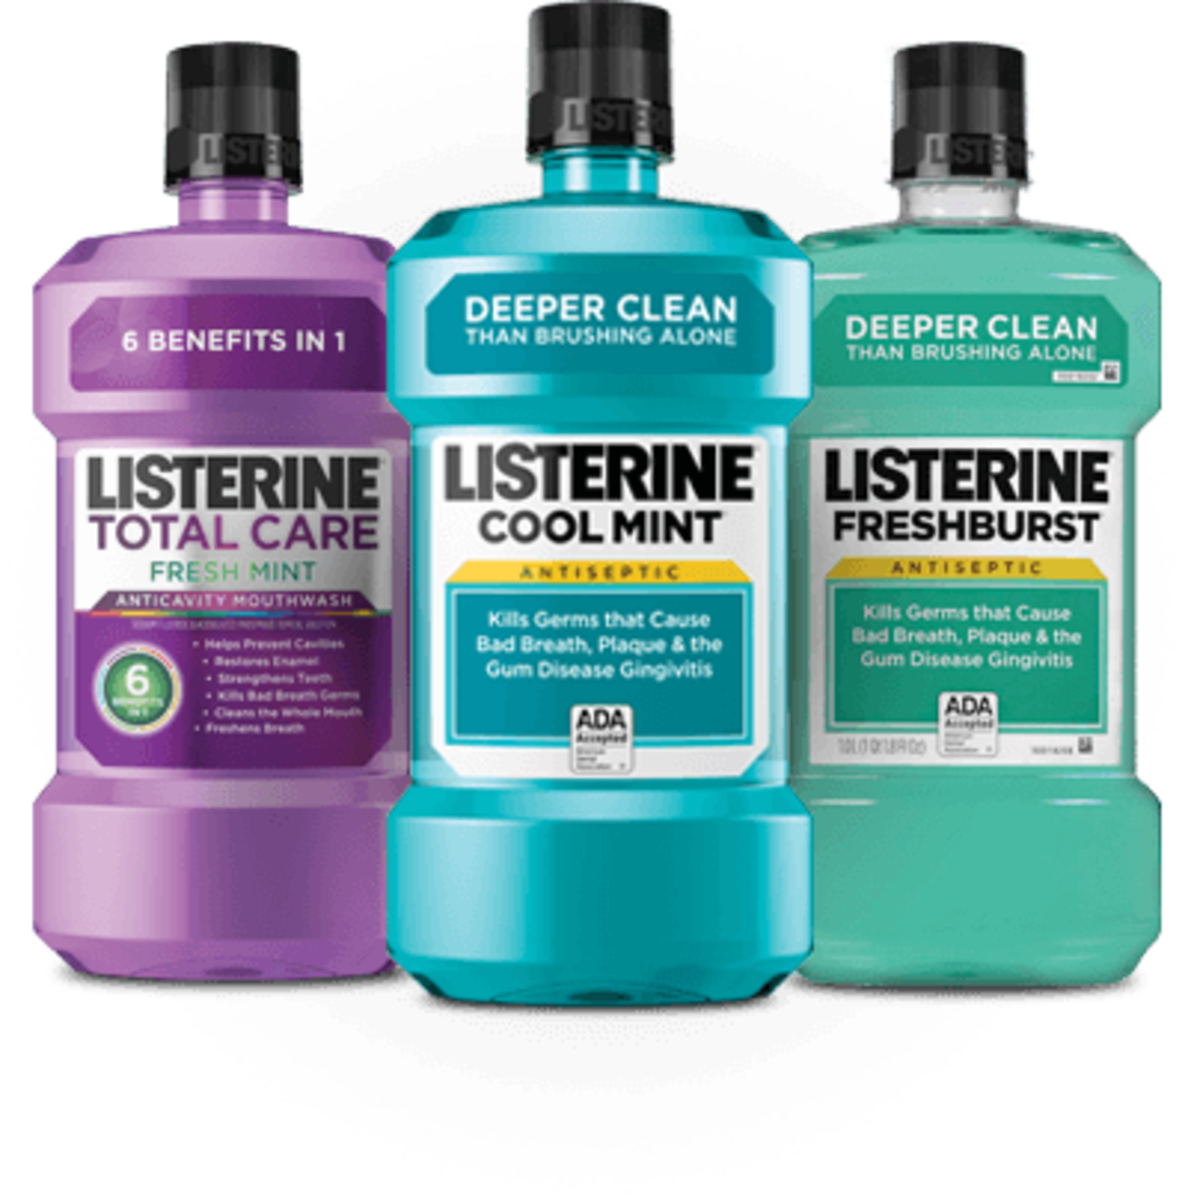 Unusual Uses for Listerine